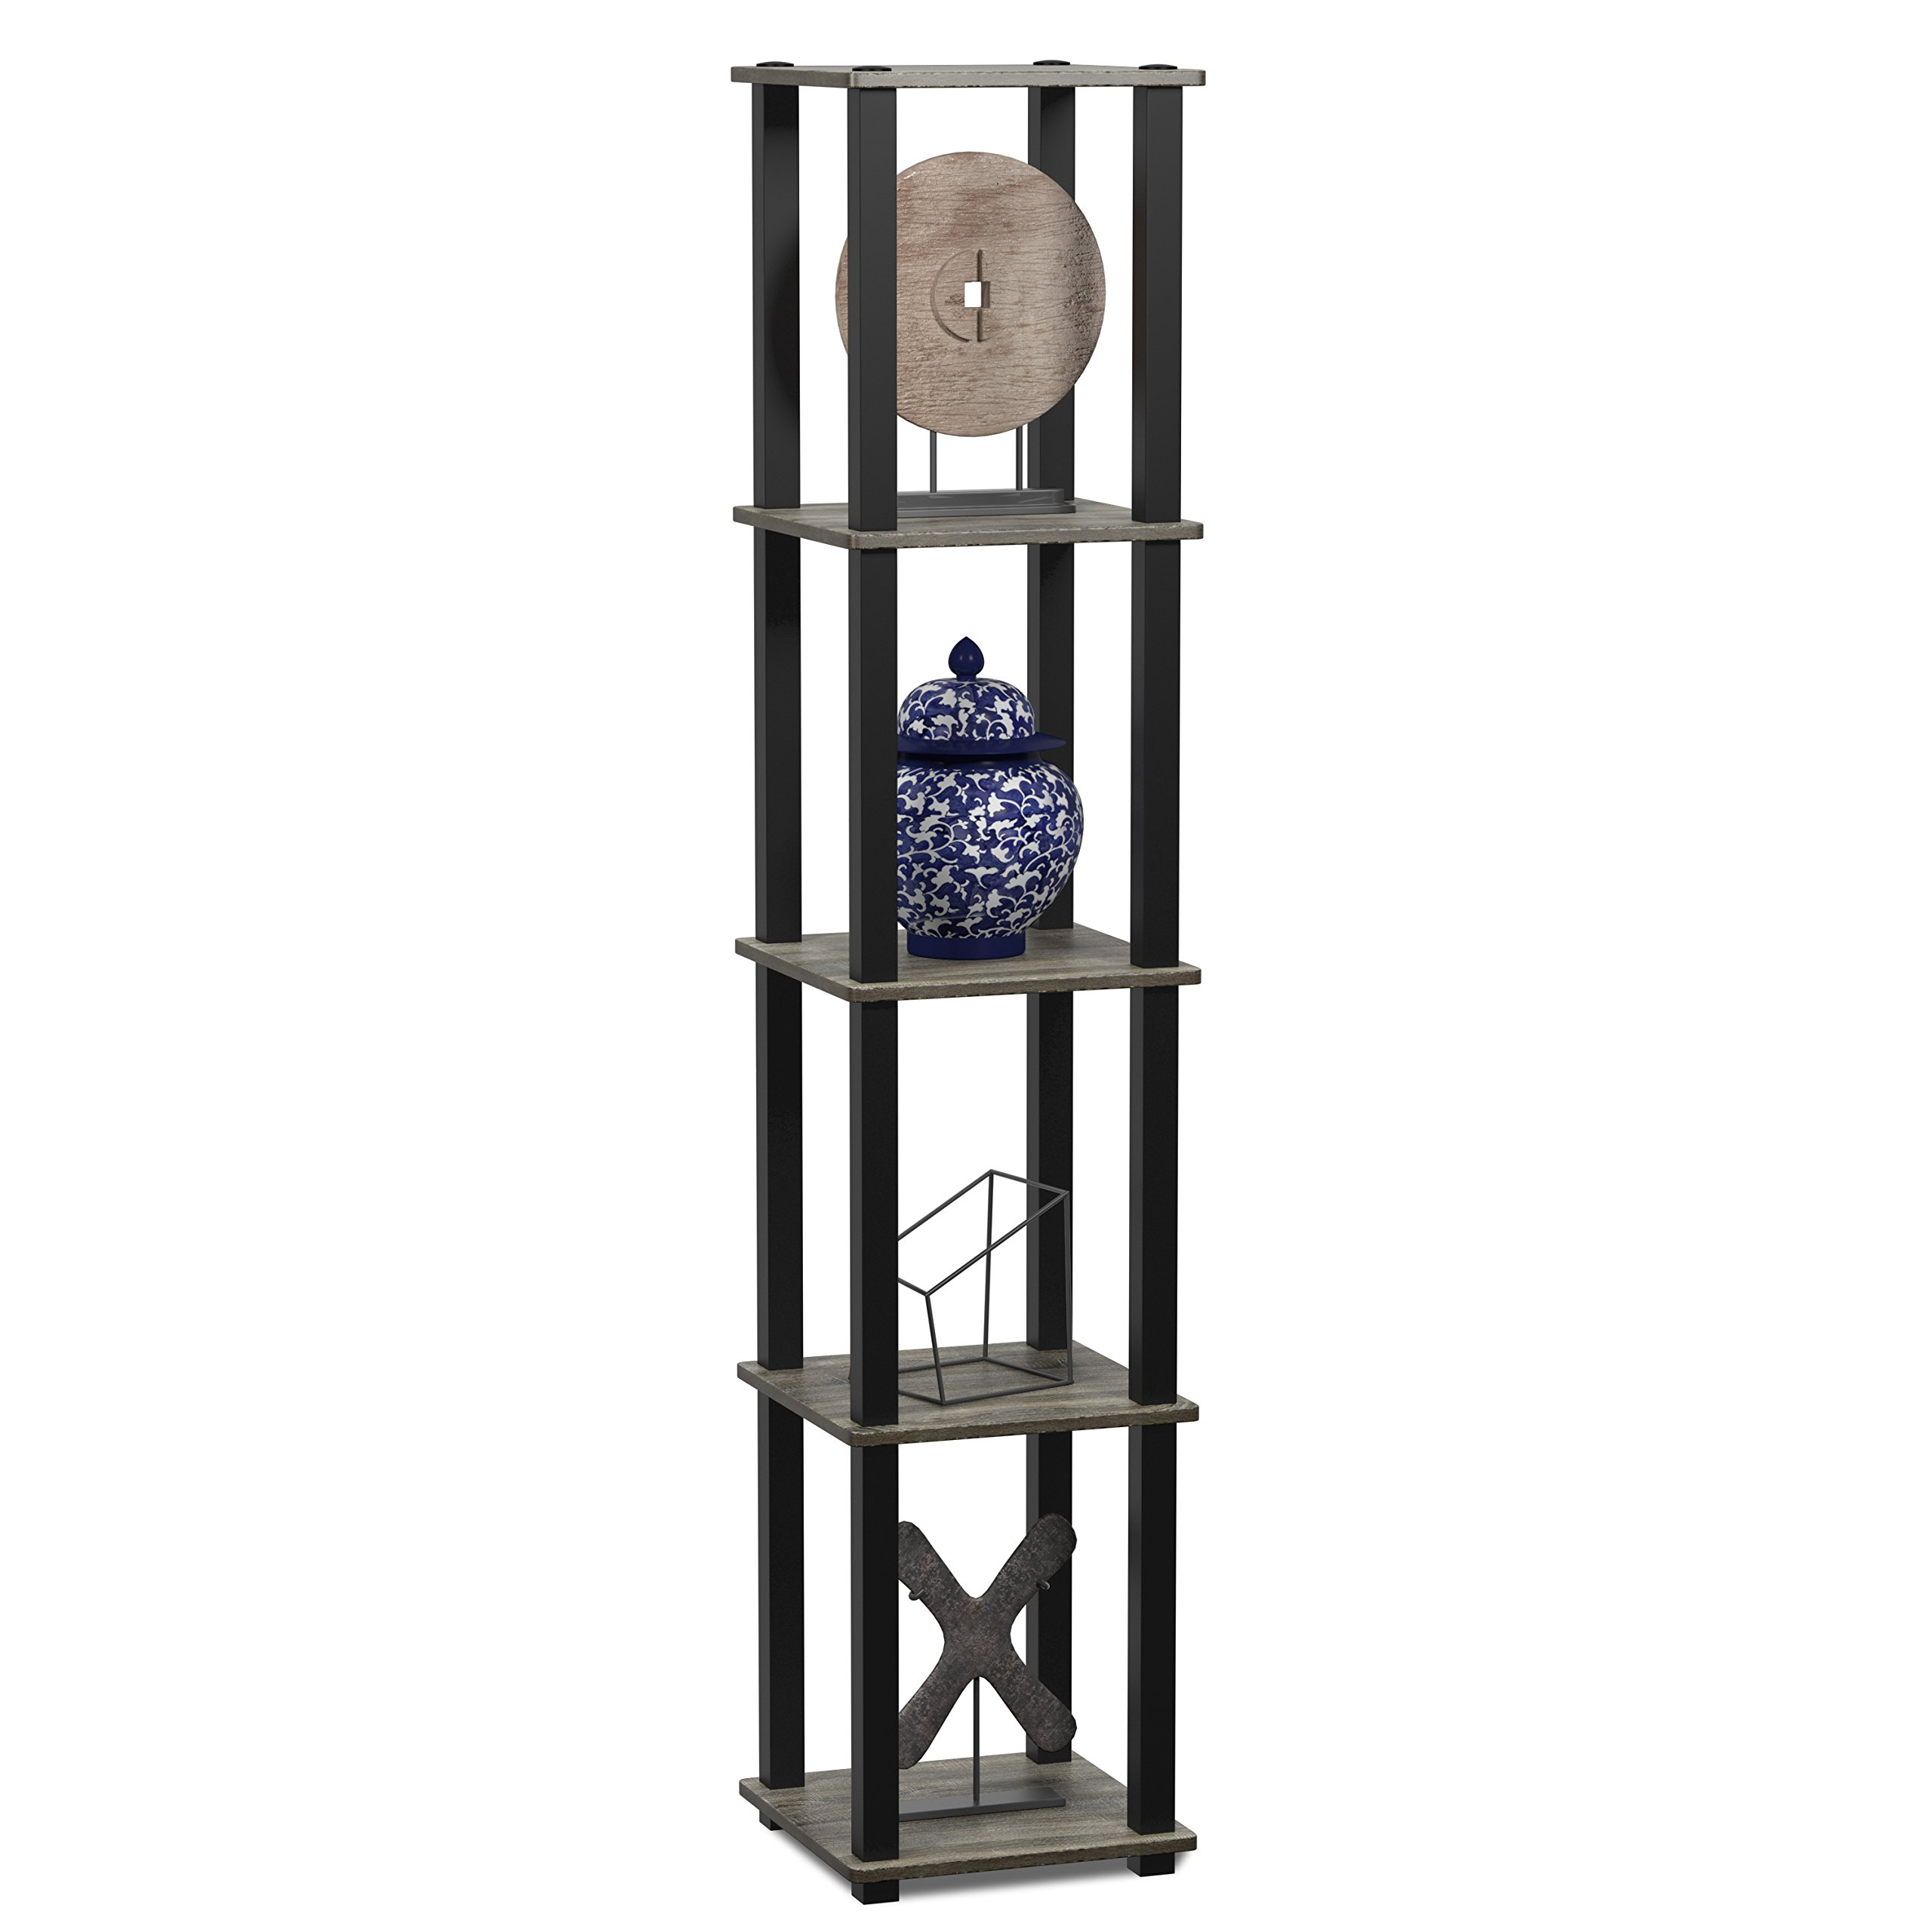 Furinno 18026GYW/BK Turn-S 5-Tier Compact Multipurpose Shelf, Square Tube, French Oak Grey/Black by Furinno (Image #3)